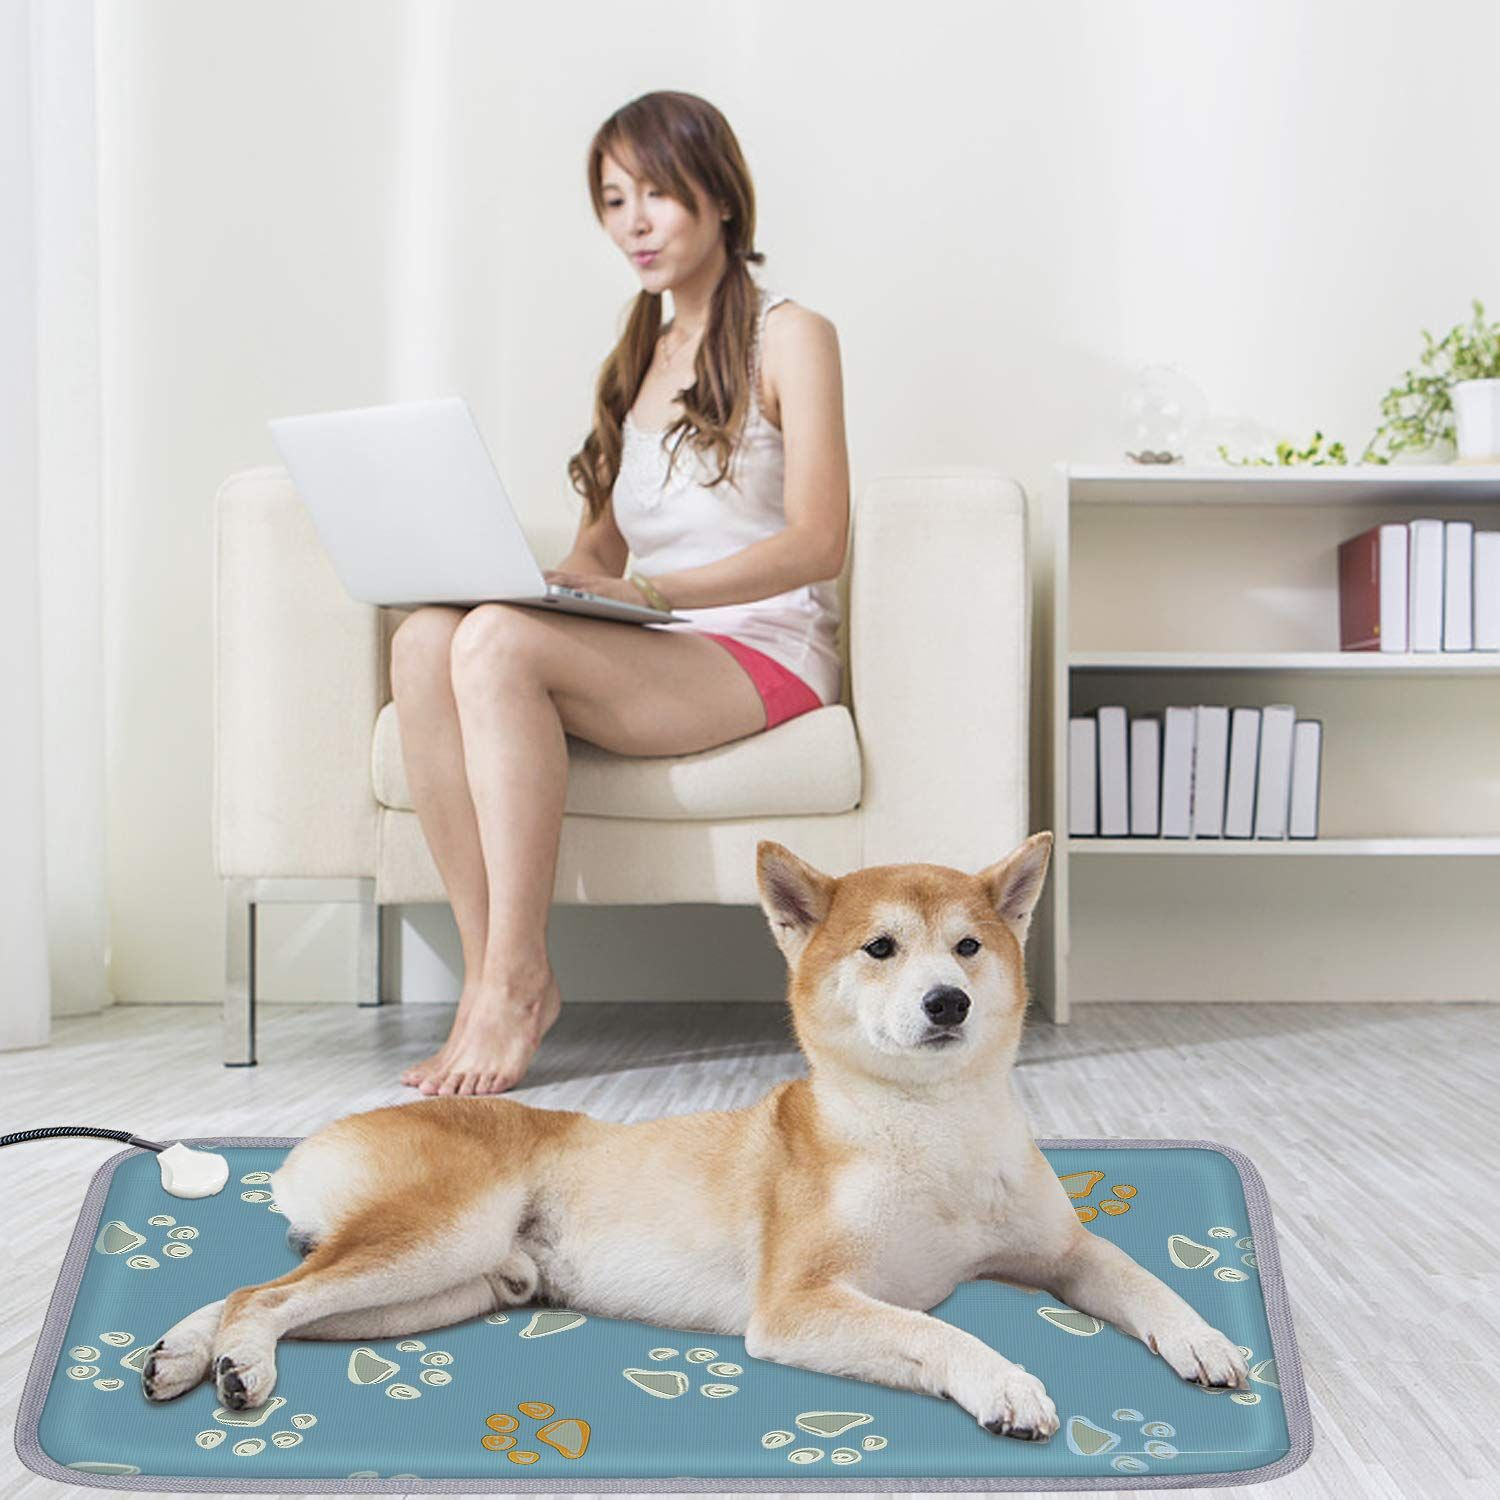 Pin On Pet Wellbeing